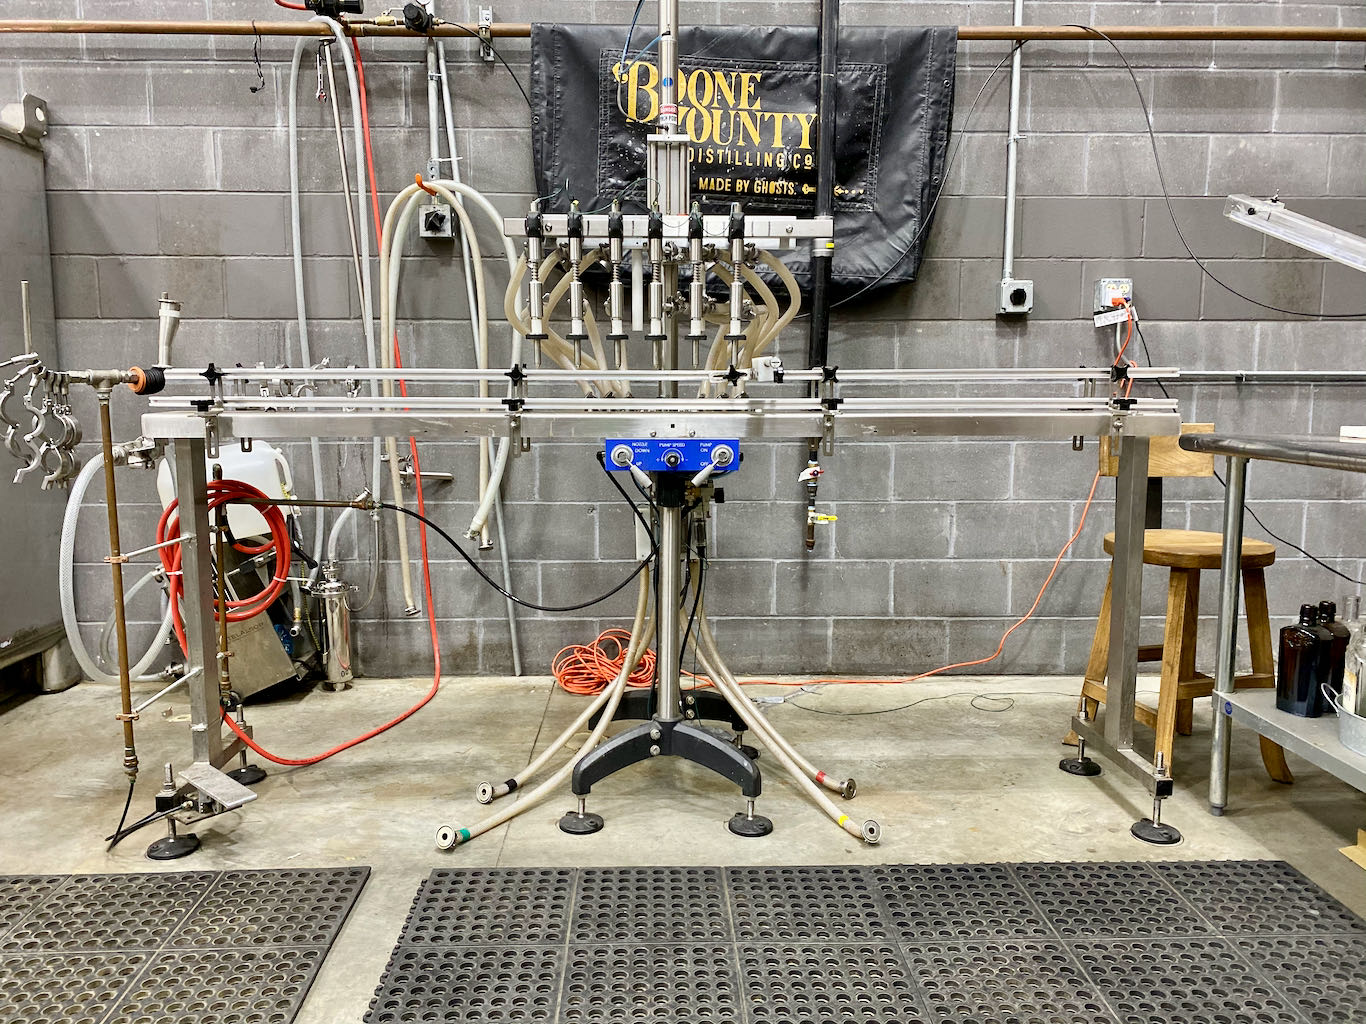 Bottling Line -Boone County Distilling Company